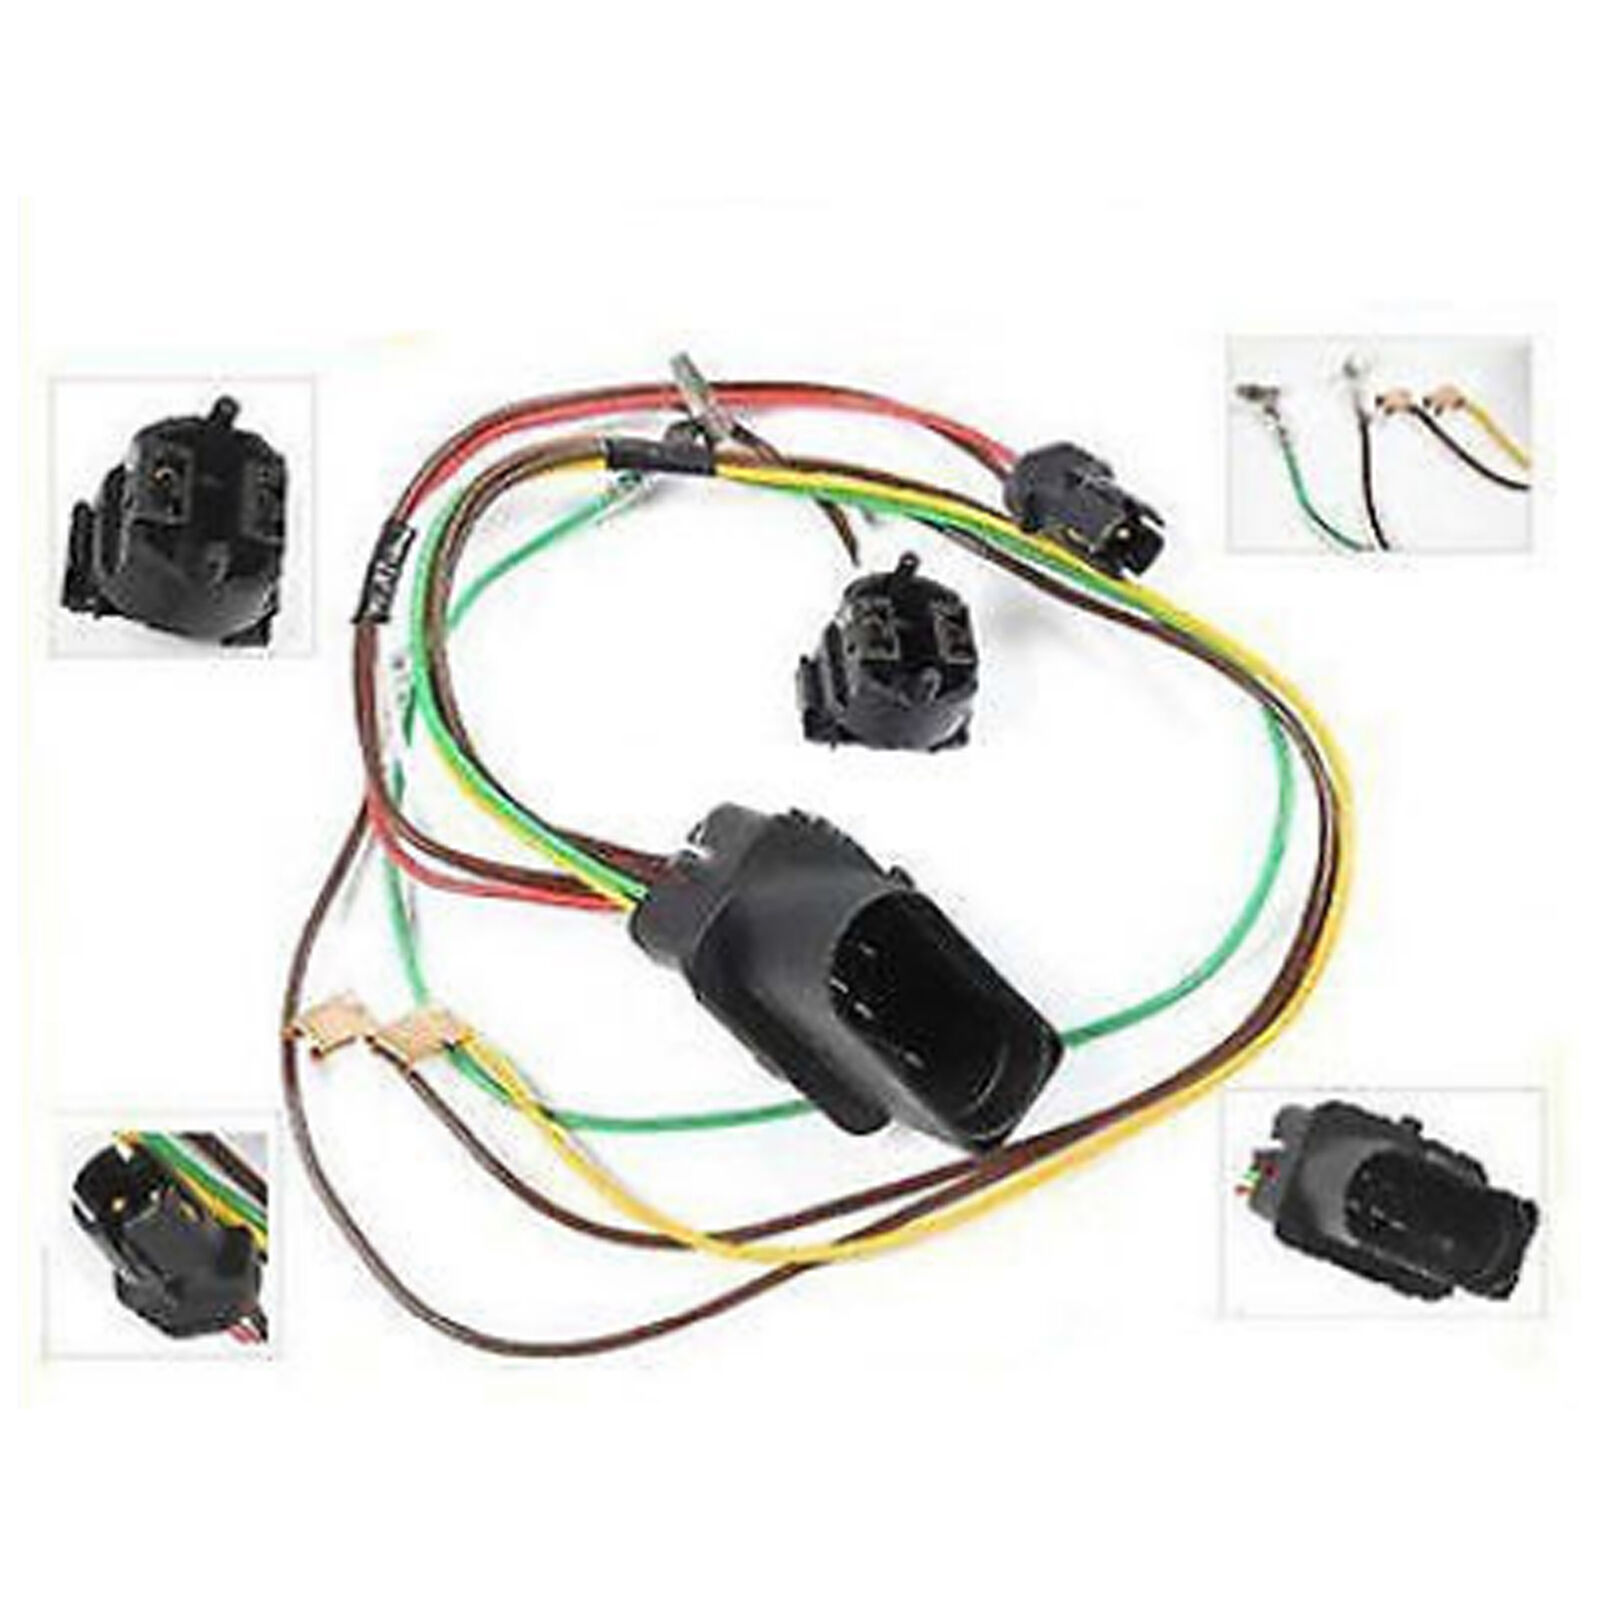 headlight head lamp wiring harness connector repair kit d068l for 01 rh picclick com Ford Wiring Harness Connectors OEM Wiring Harness Connectors